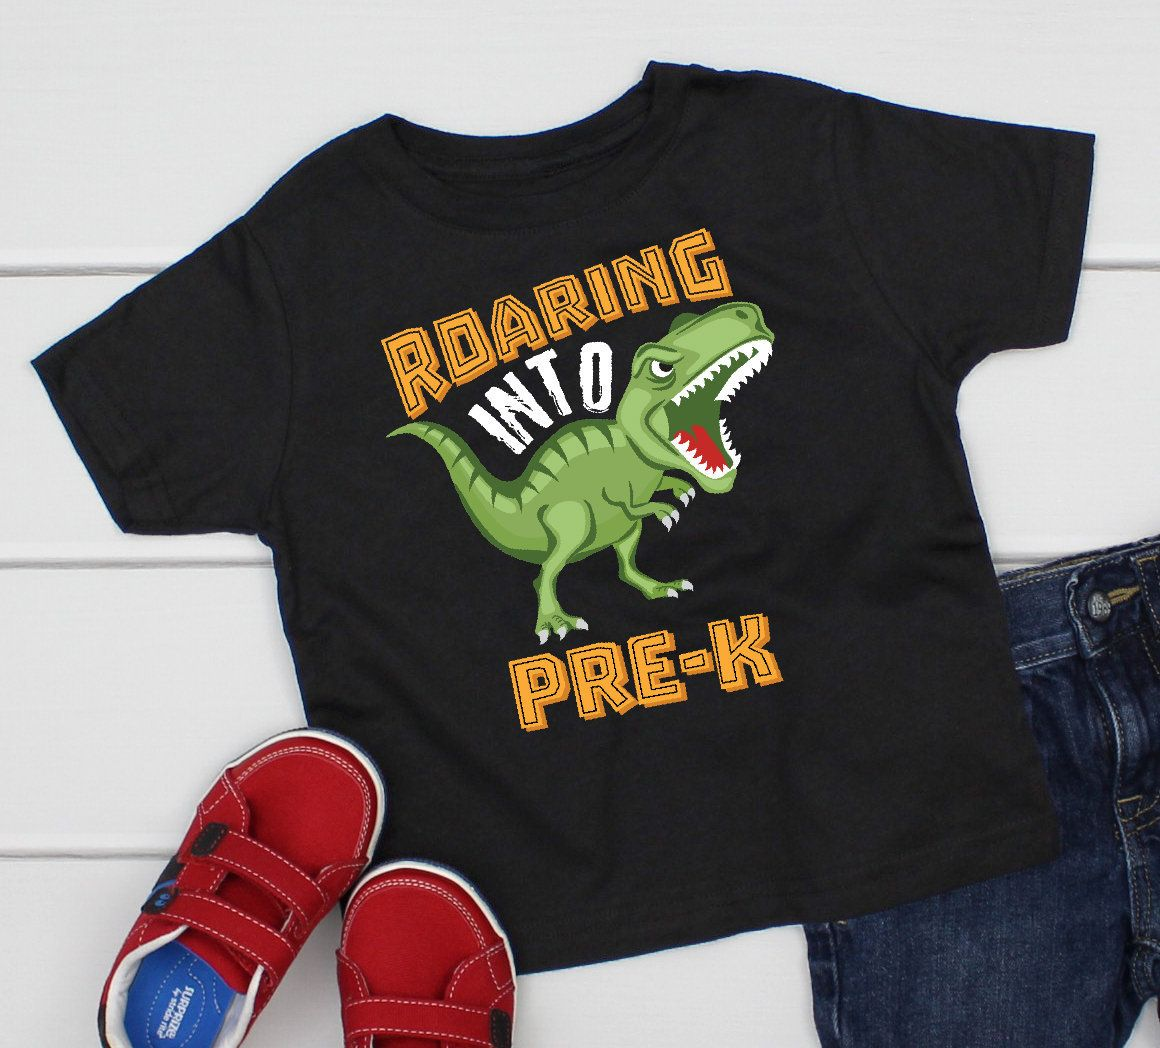 Pre-k dinosaur, roaring into pre-k, first day of school pre-k shirt, first day of school dinosaur school shirt 1st day of pre k shirt BA-051 #firstdayofschooloutfits